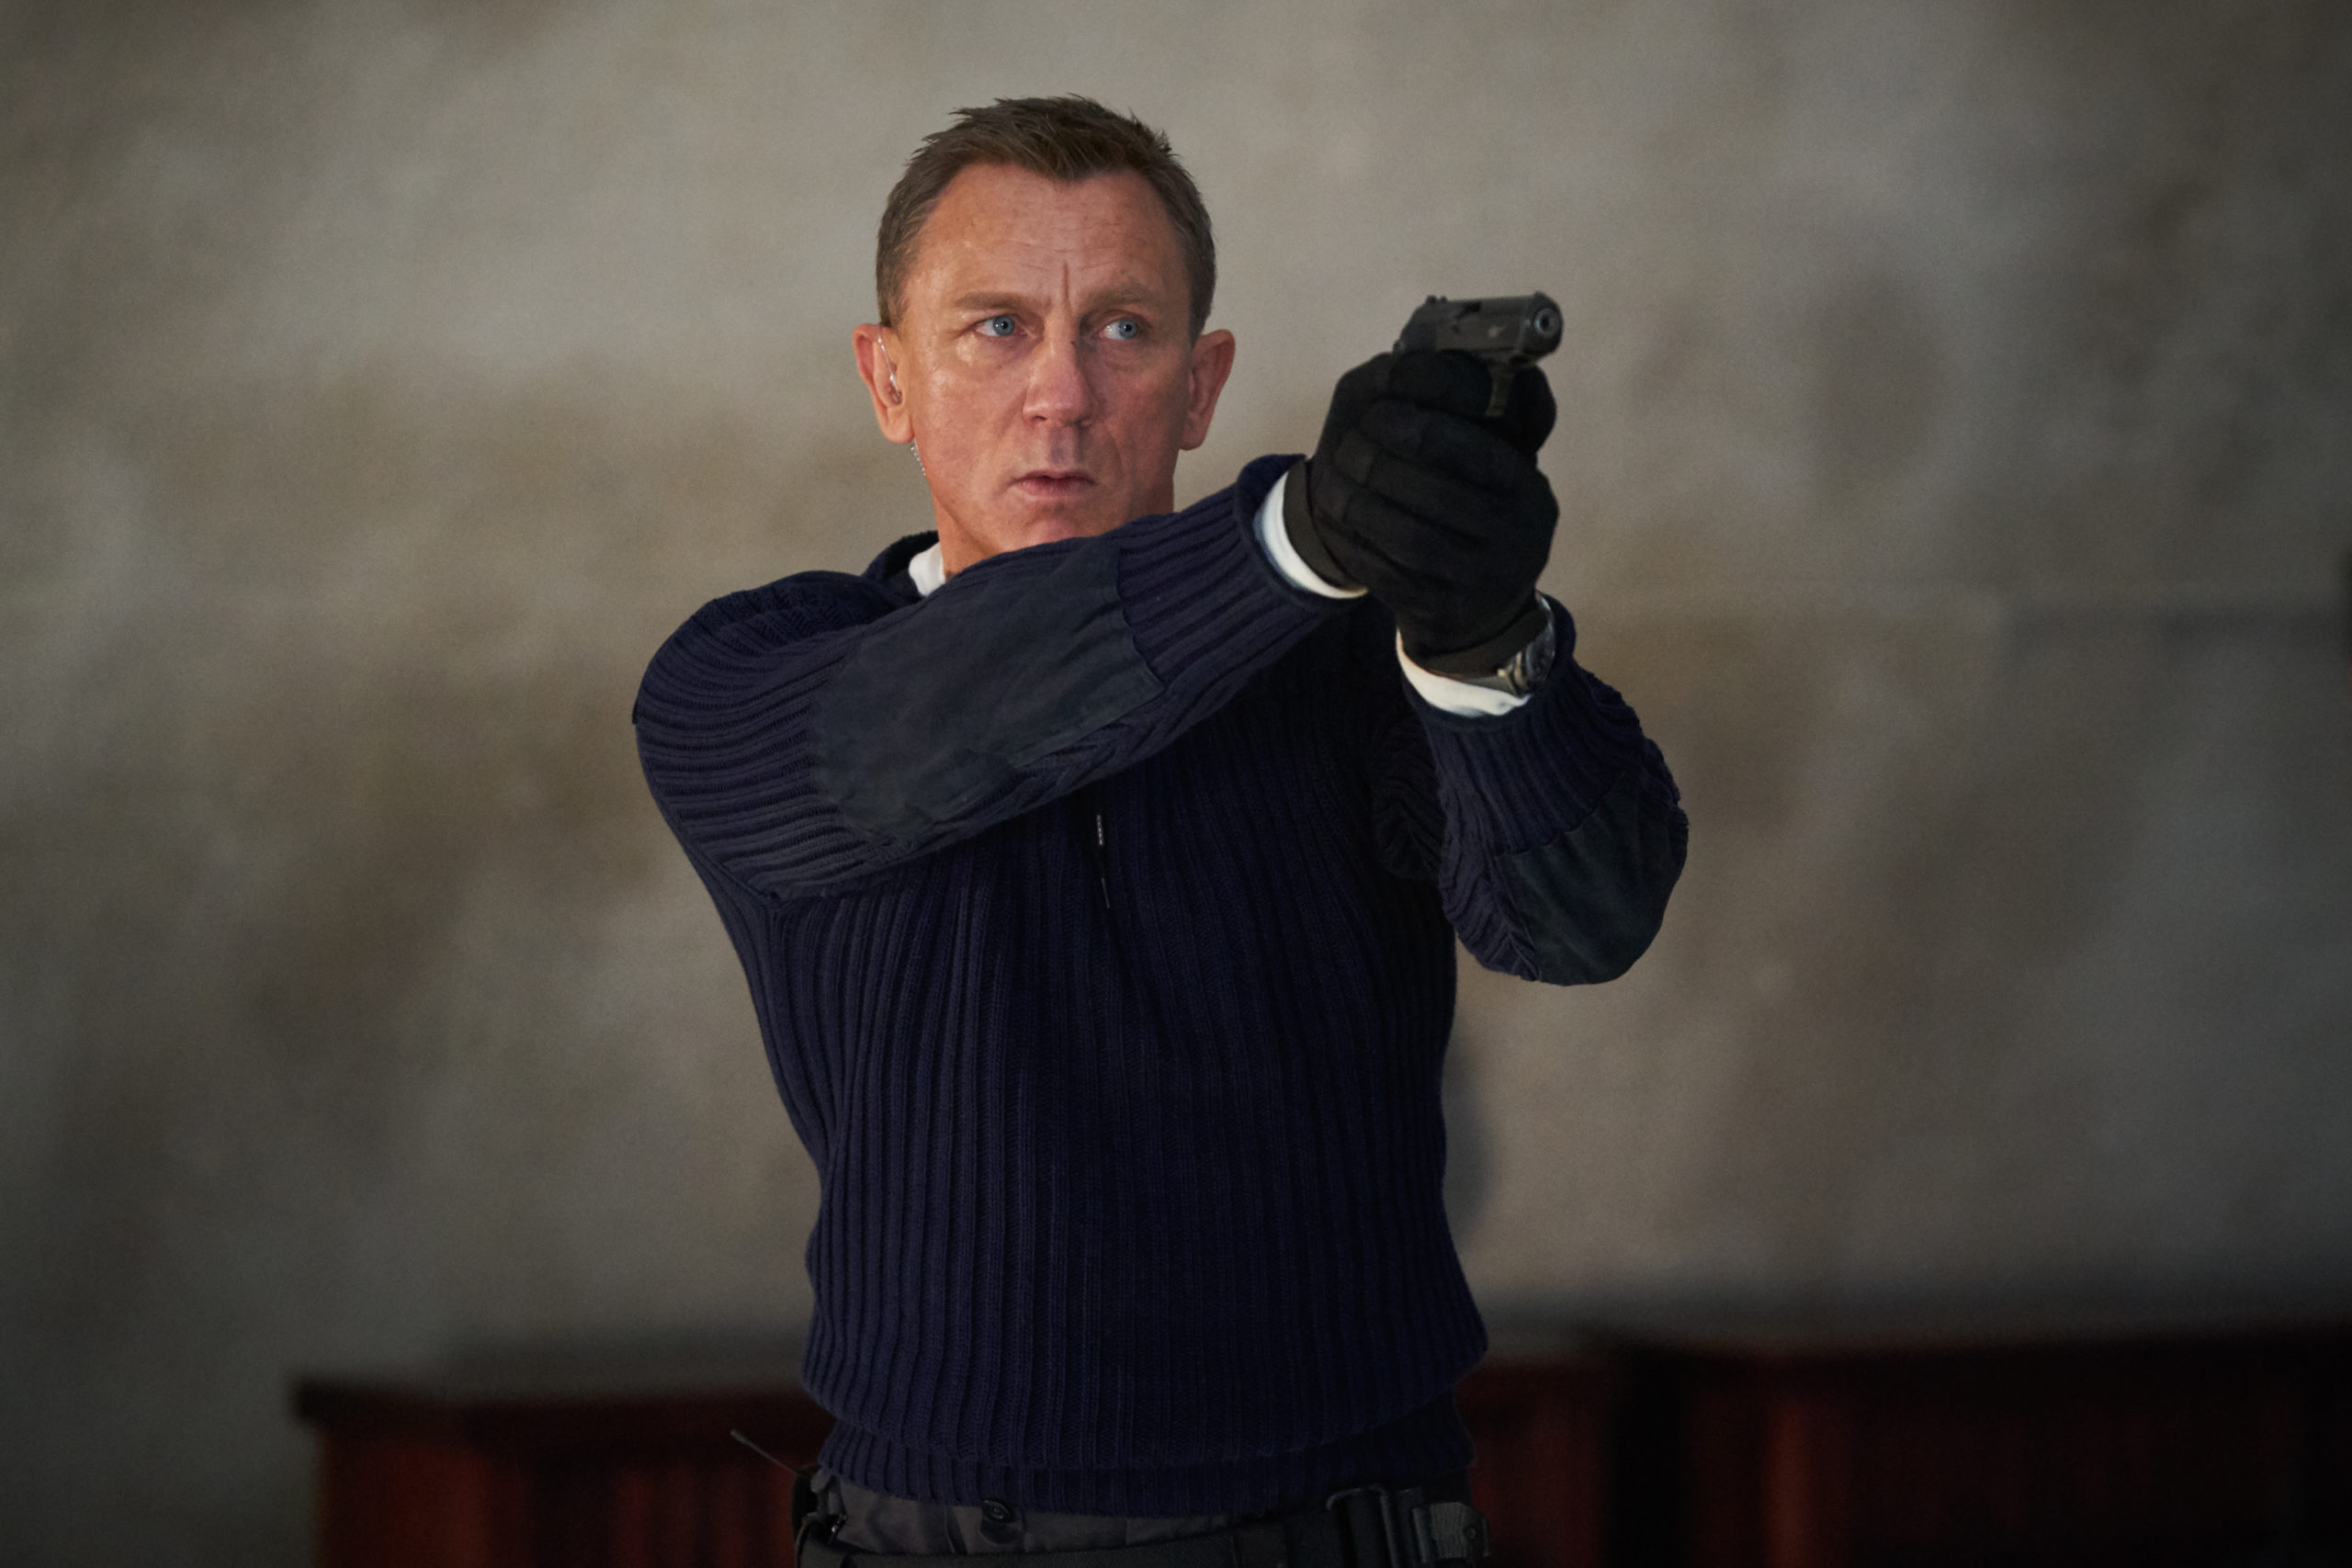 No Time to Die trailer James Bond Can Movie Distribution Return to Normal After the Coronavirus? box office theater survival